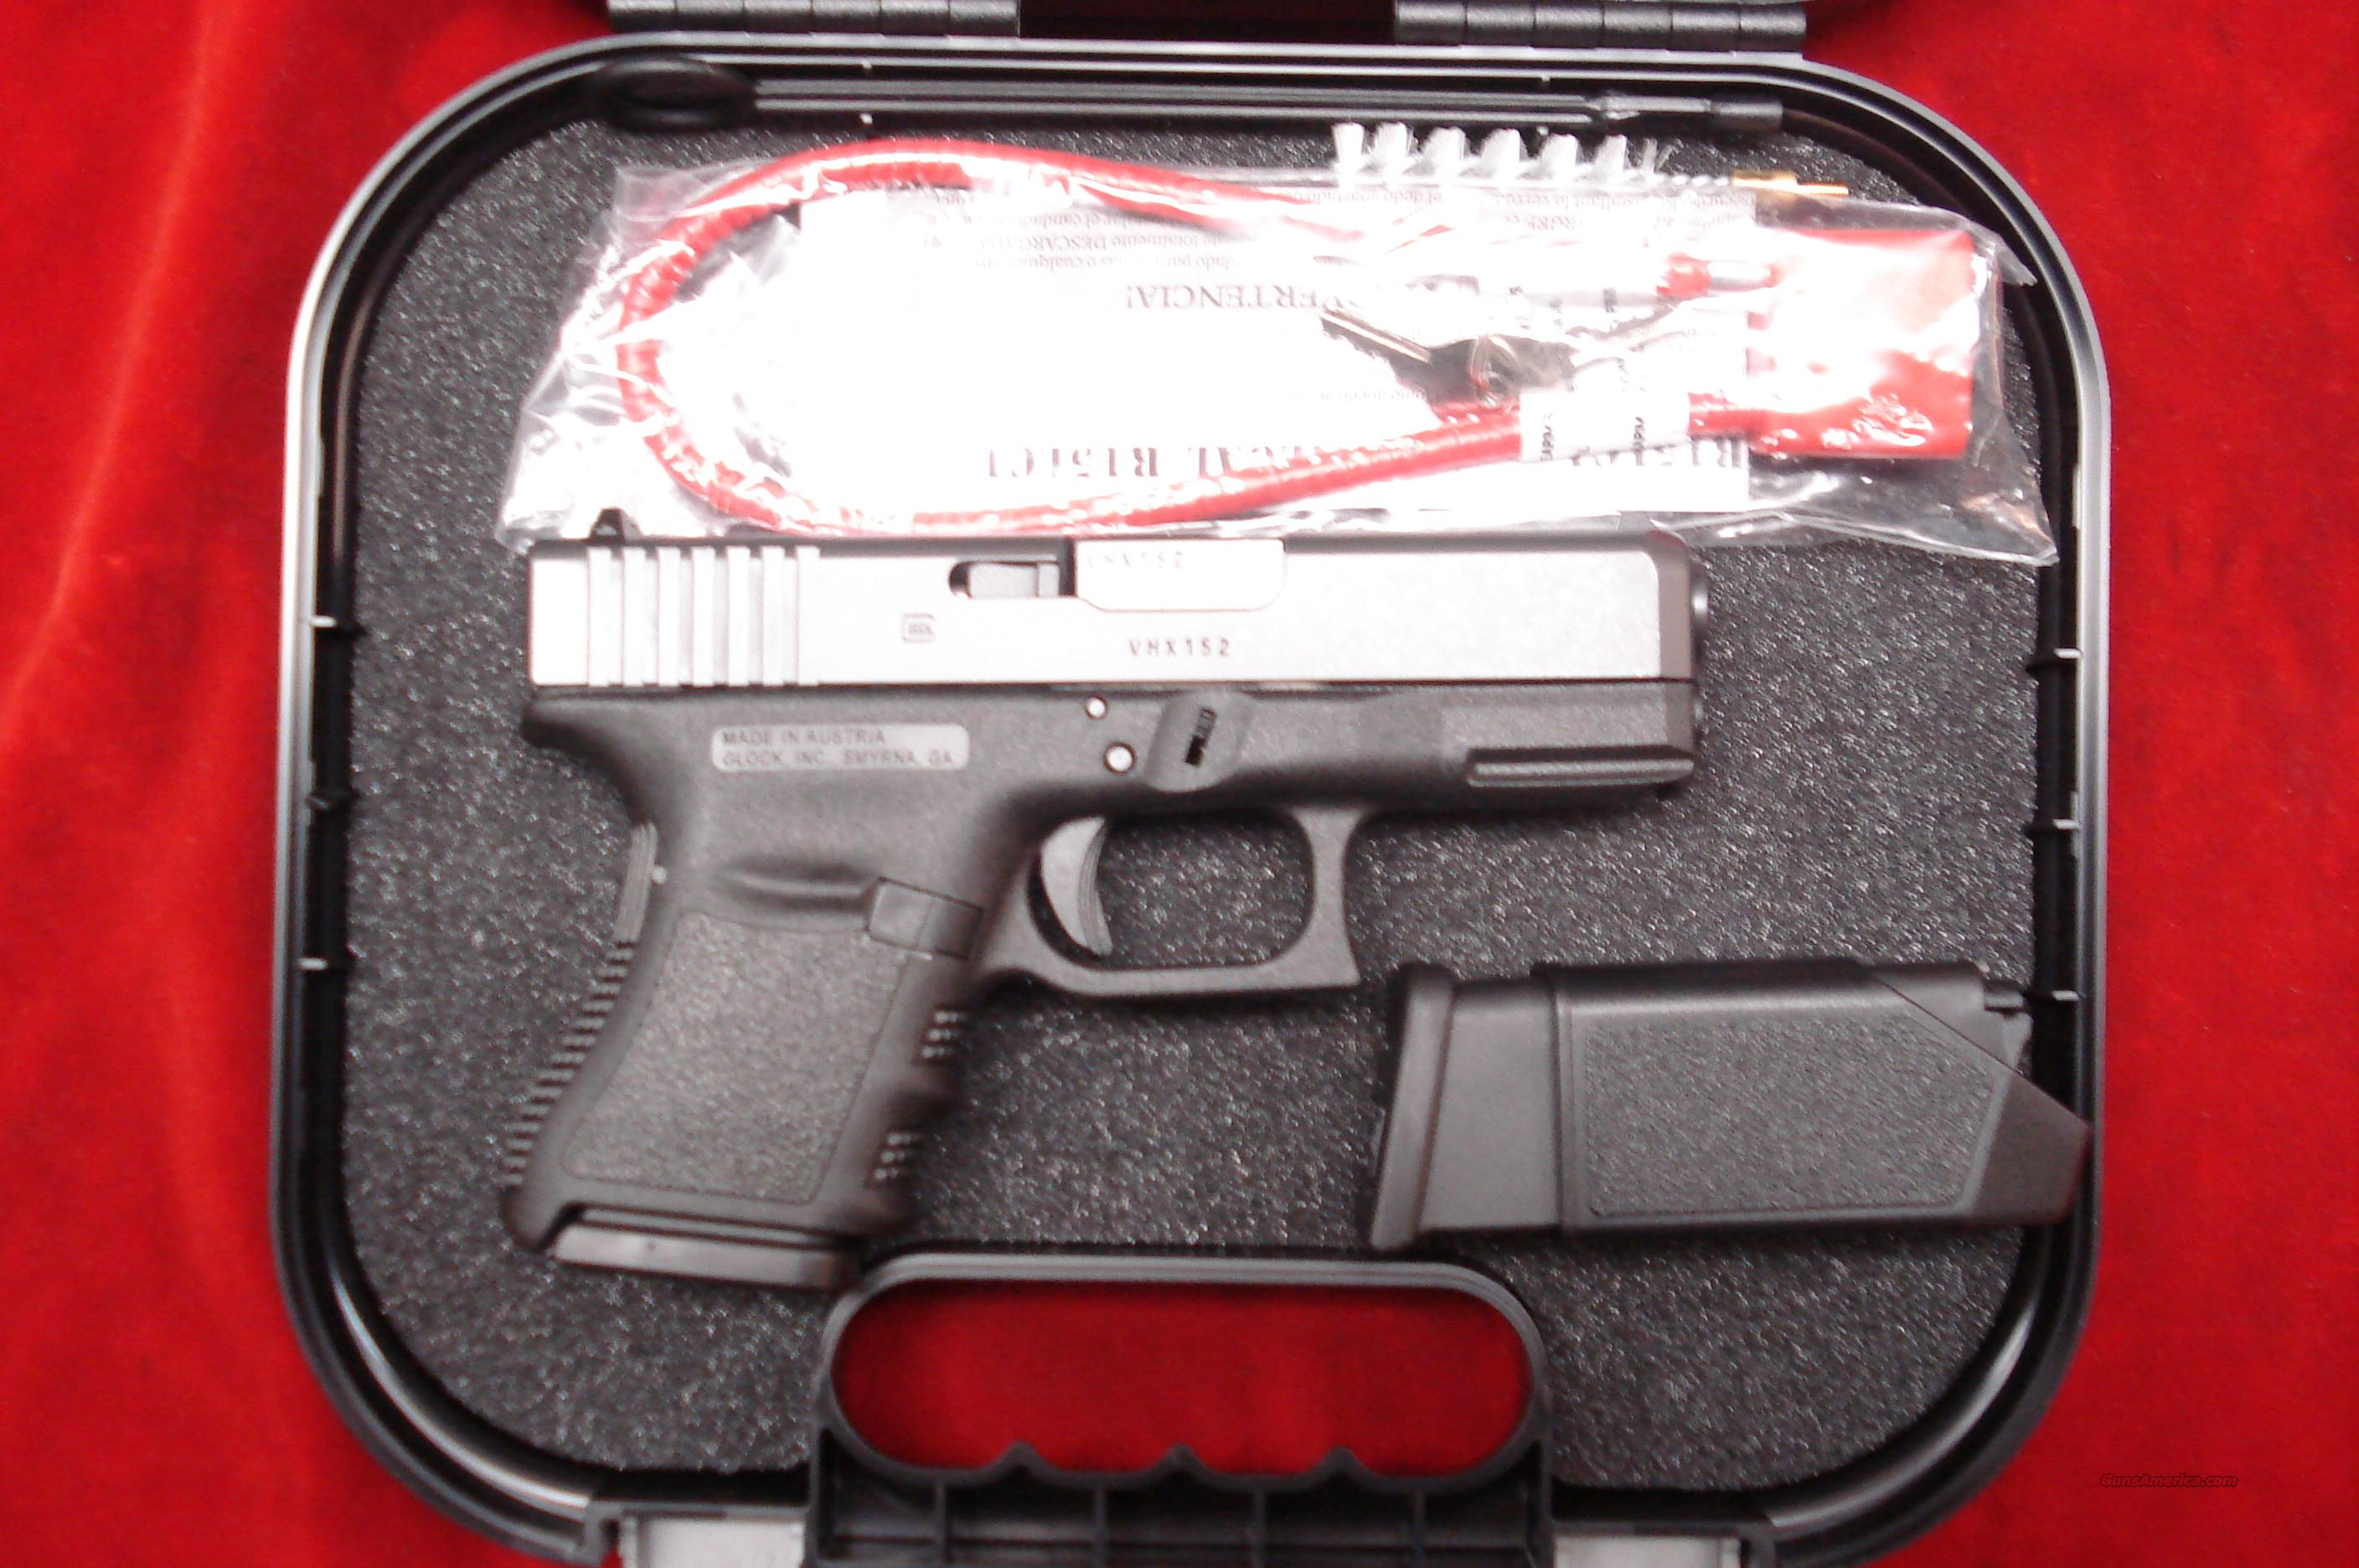 GLOCK MODEL 29 GEN3 10MM  NEW  Guns > Pistols > Glock Pistols > 29/30/36